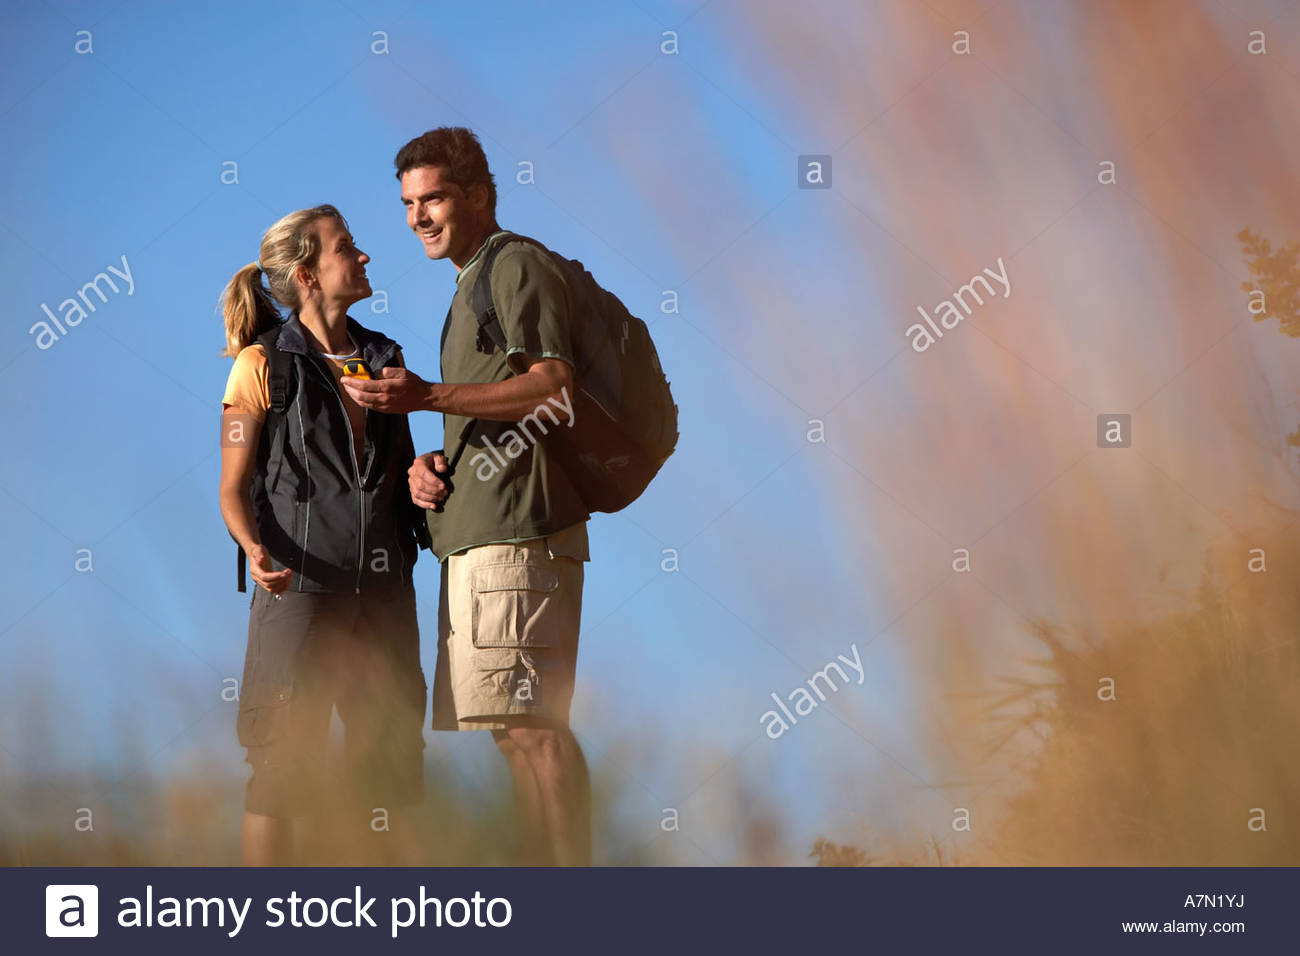 Couple hiking man holding navigation system smiling focus on background - Stock Image